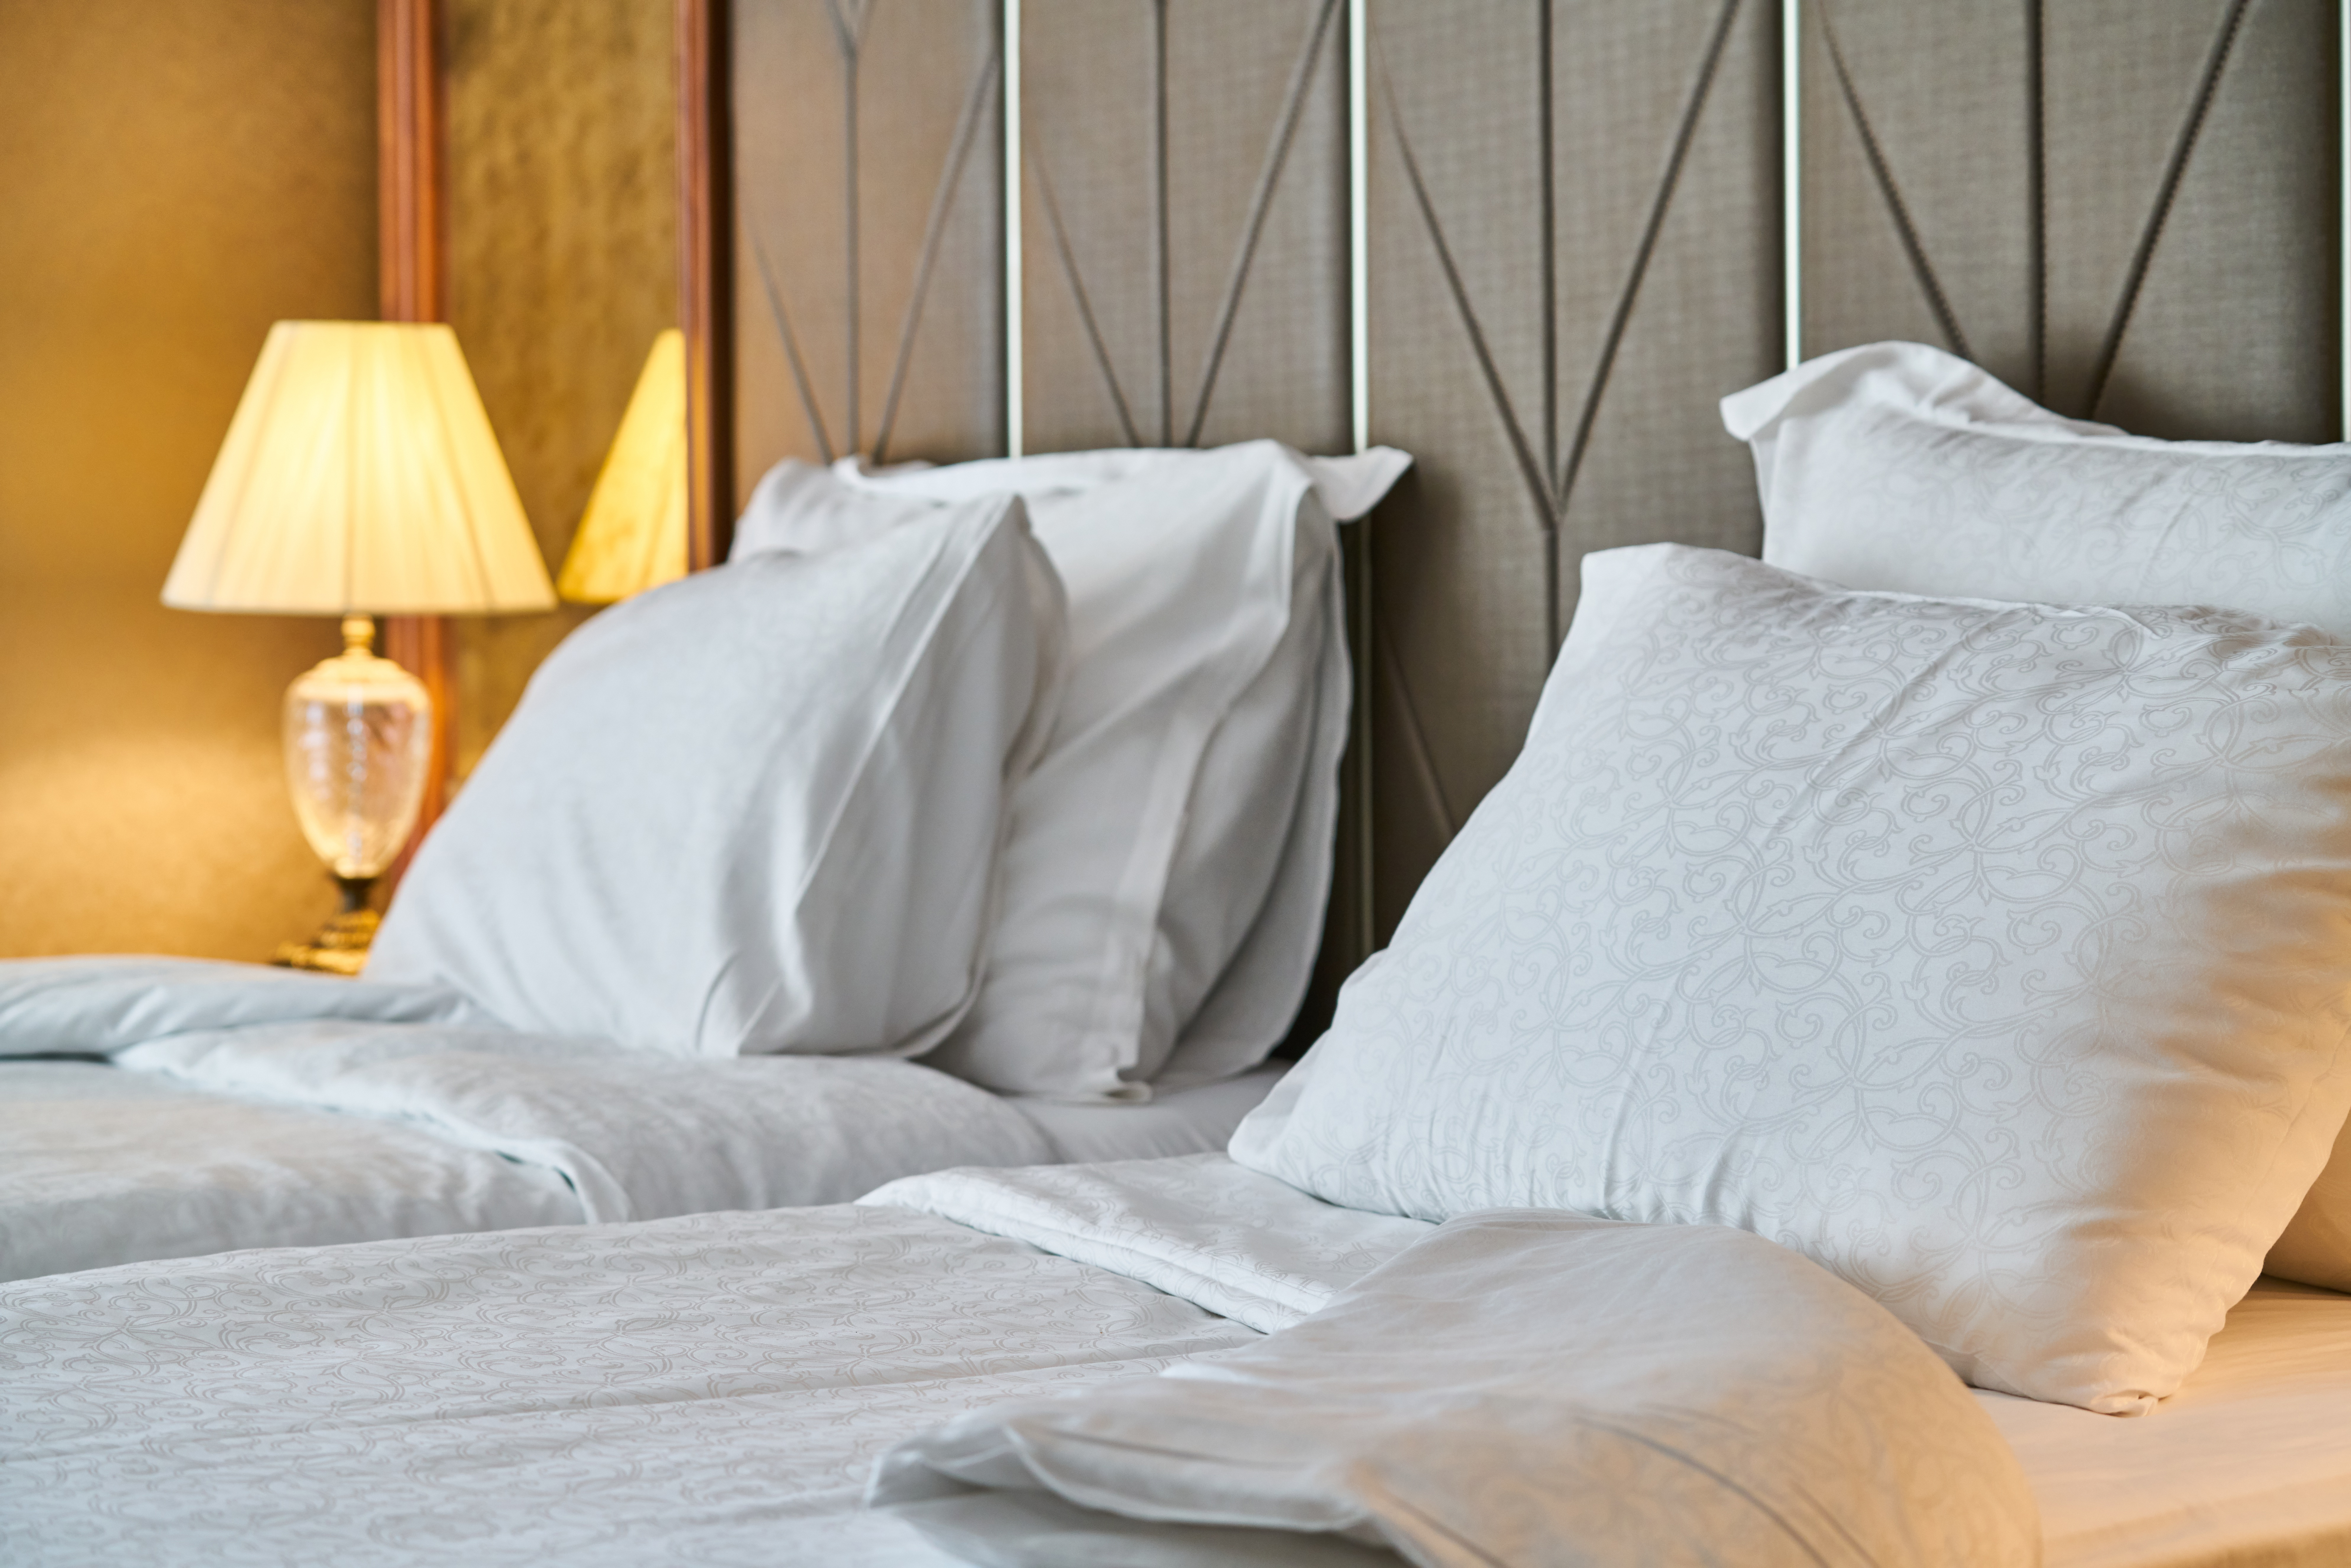 hotel, room, bed, pillow, sheets, white,